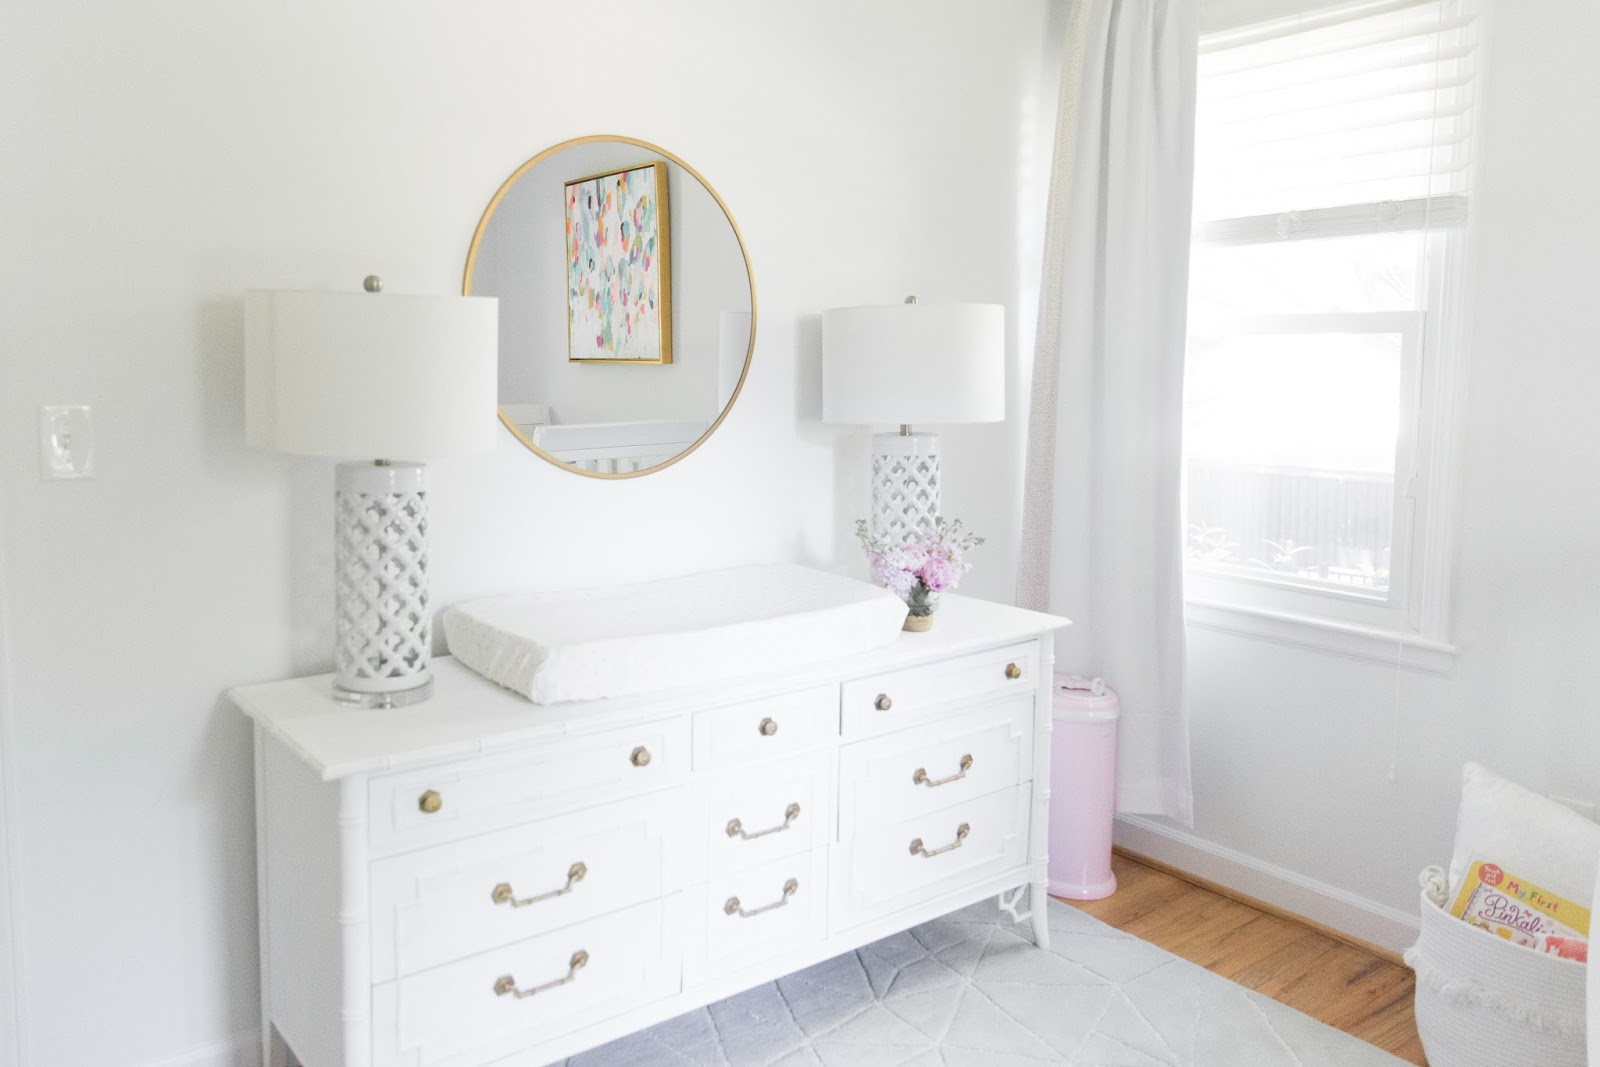 reveal magical o sydney dresser nursery featuring polka wildflower dot whimsical s lotus room c beautiful ceiling havenly baby fatale fab girl babygirlnurserylandofnodgoldknobsdresser a